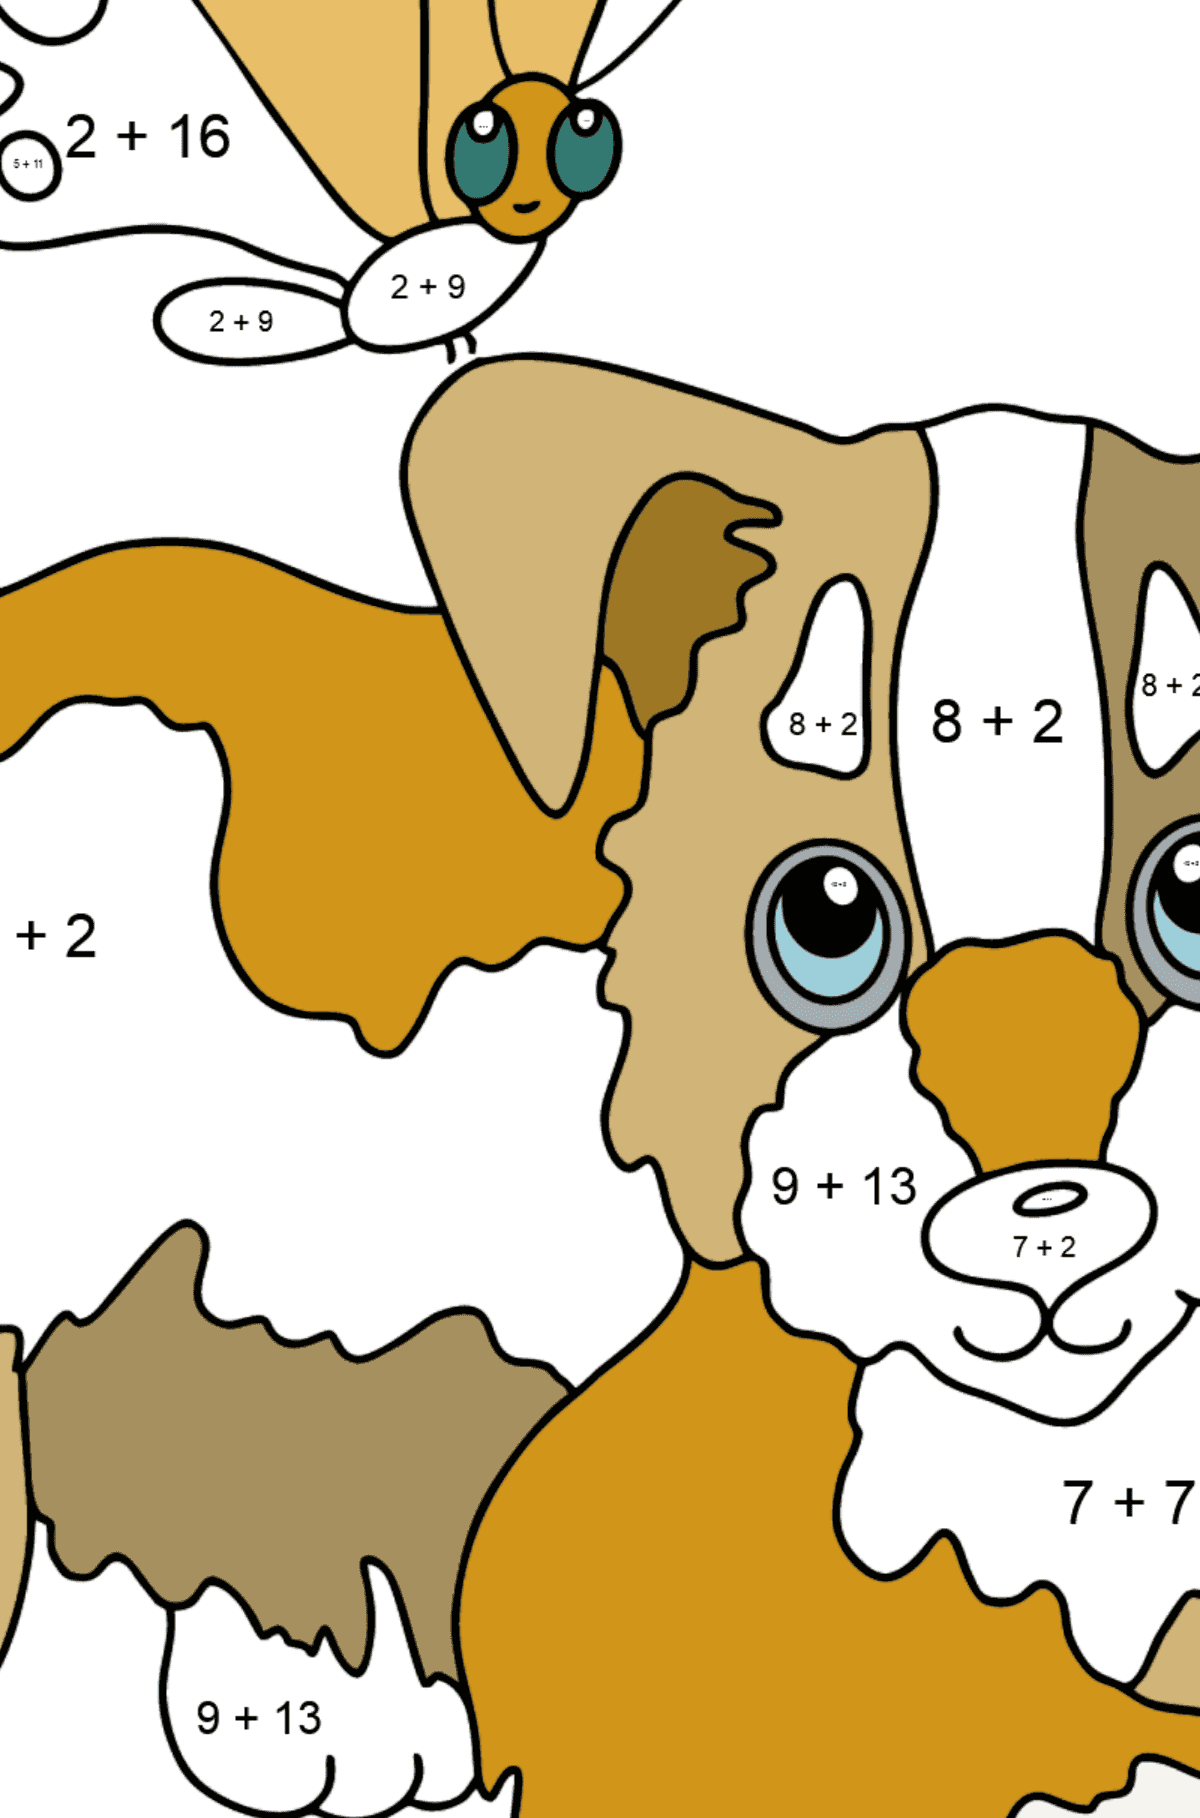 Coloring Page - A Dog is Playing with a Butterfly - Math Coloring - Addition for Kids